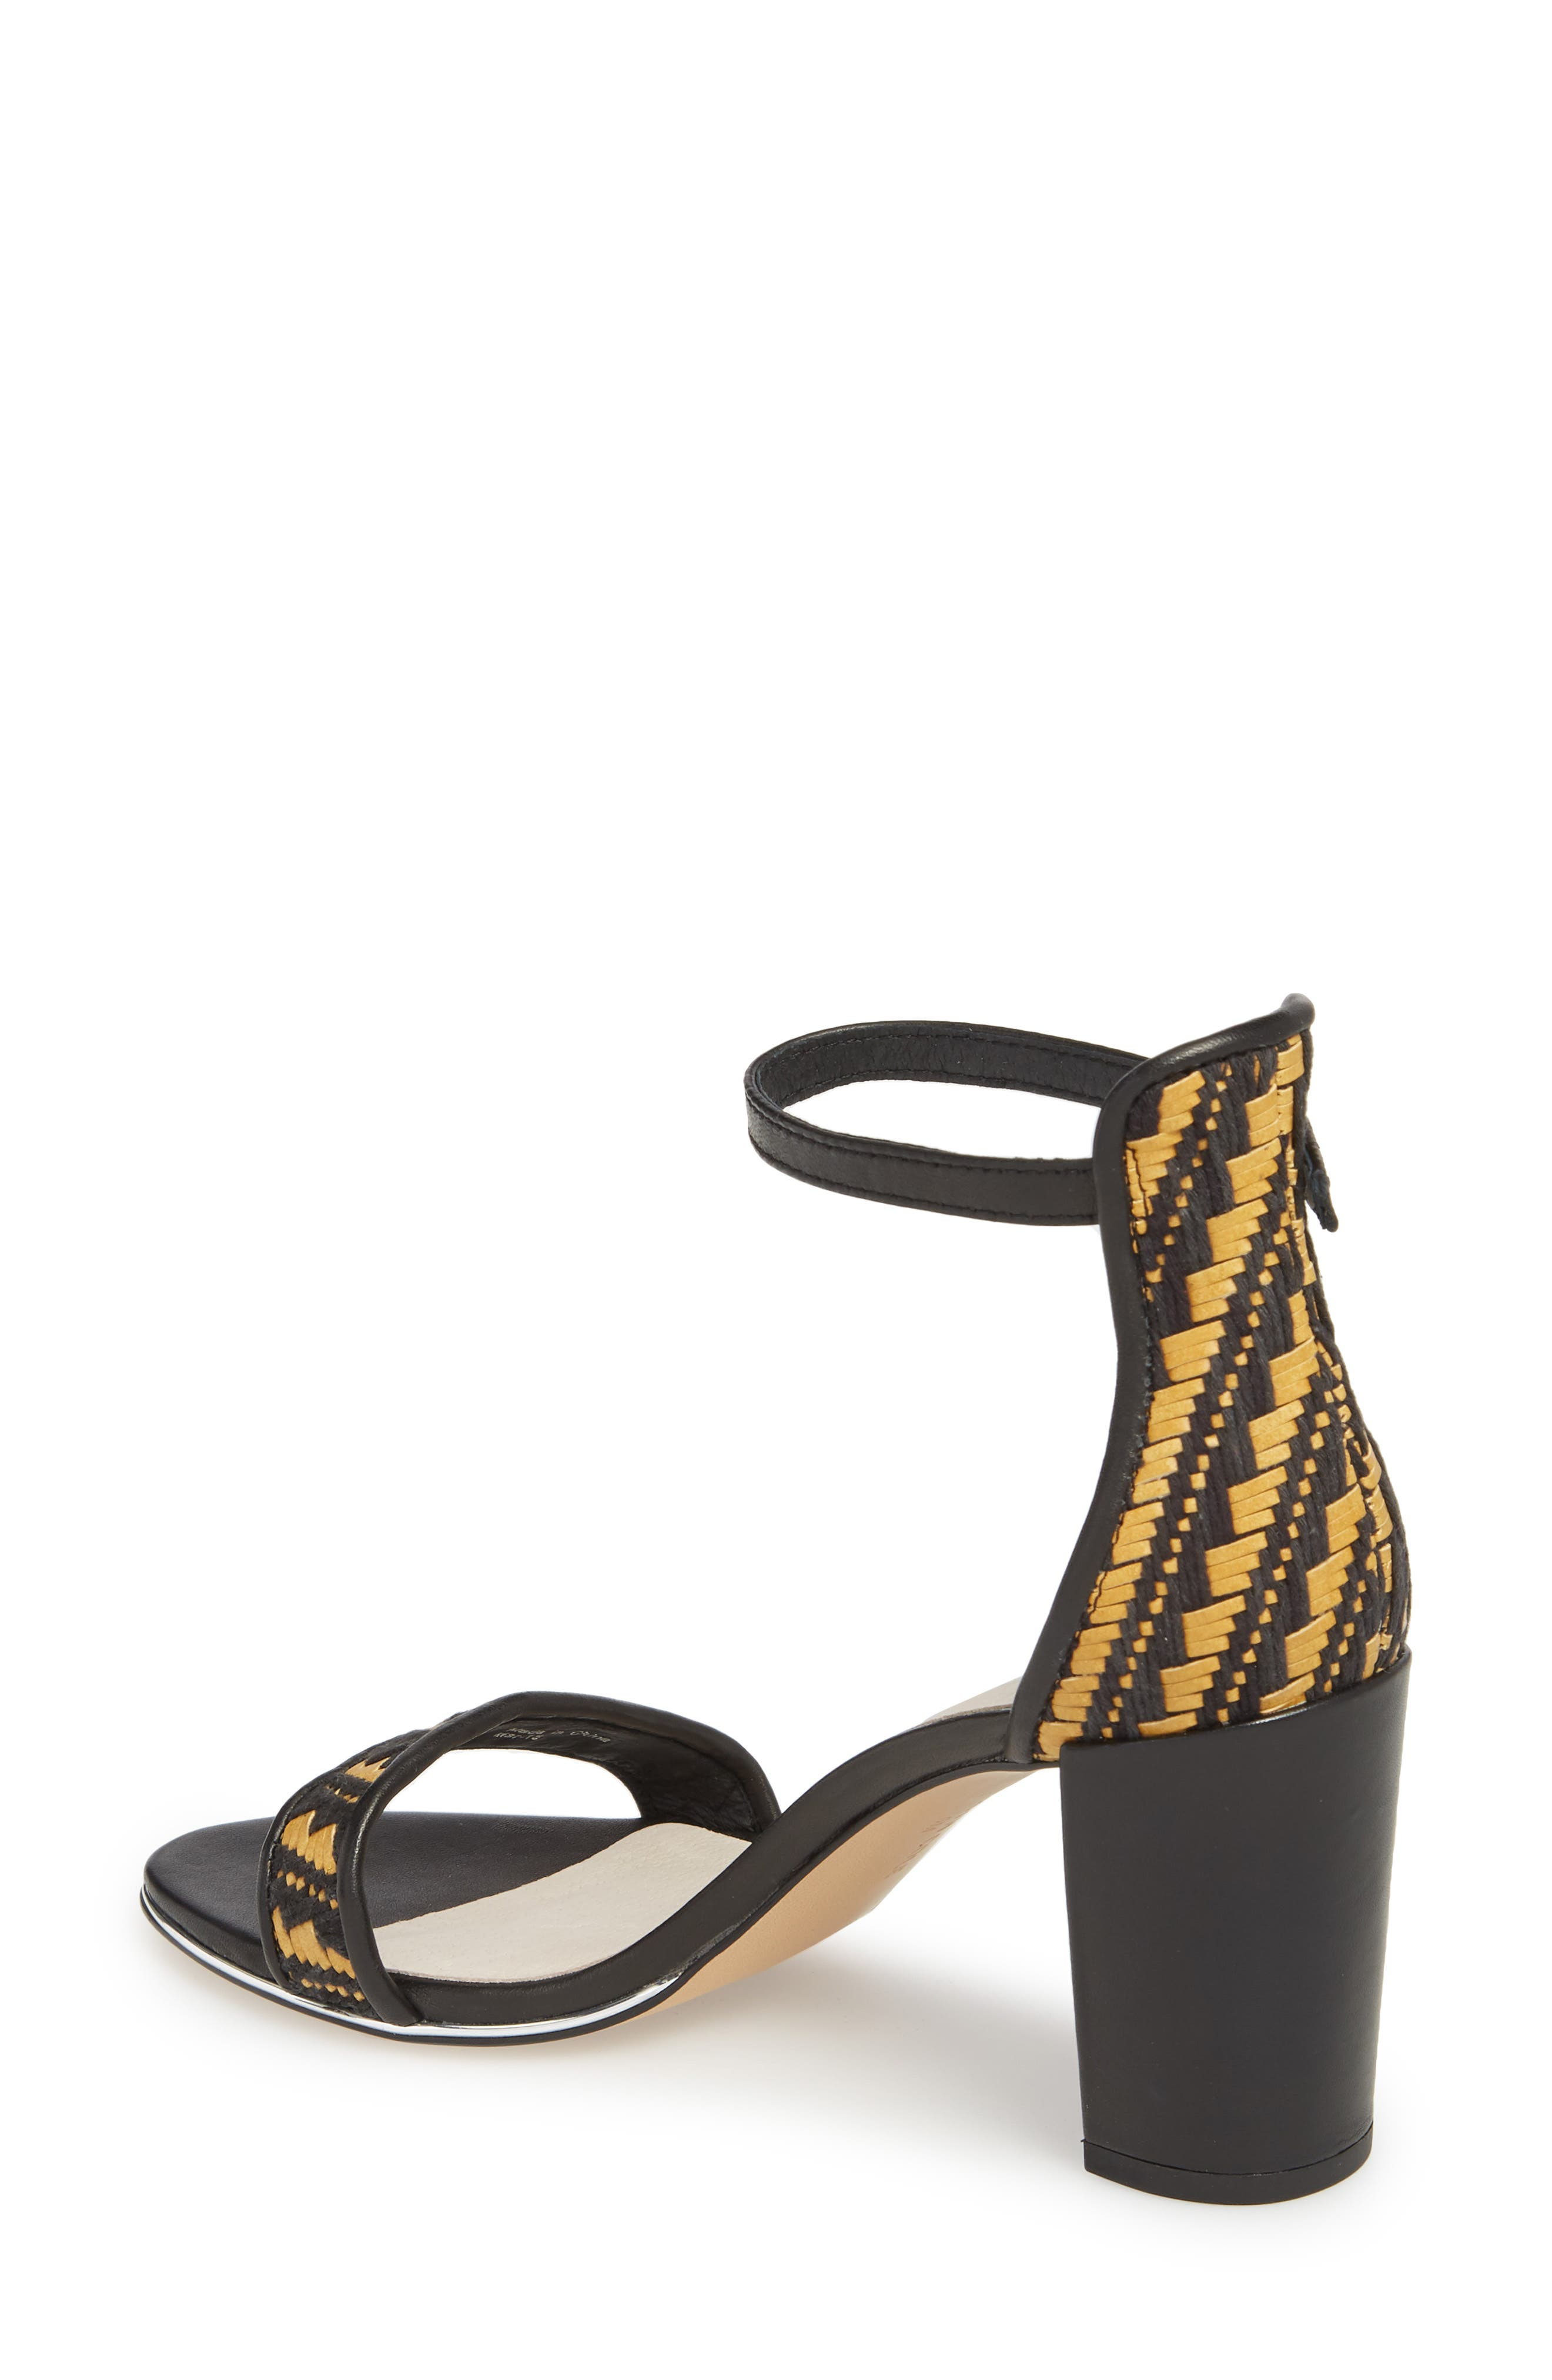 KENNETH COLE NEW YORK, 'Lex' Ankle Strap Sandal, Alternate thumbnail 2, color, 004